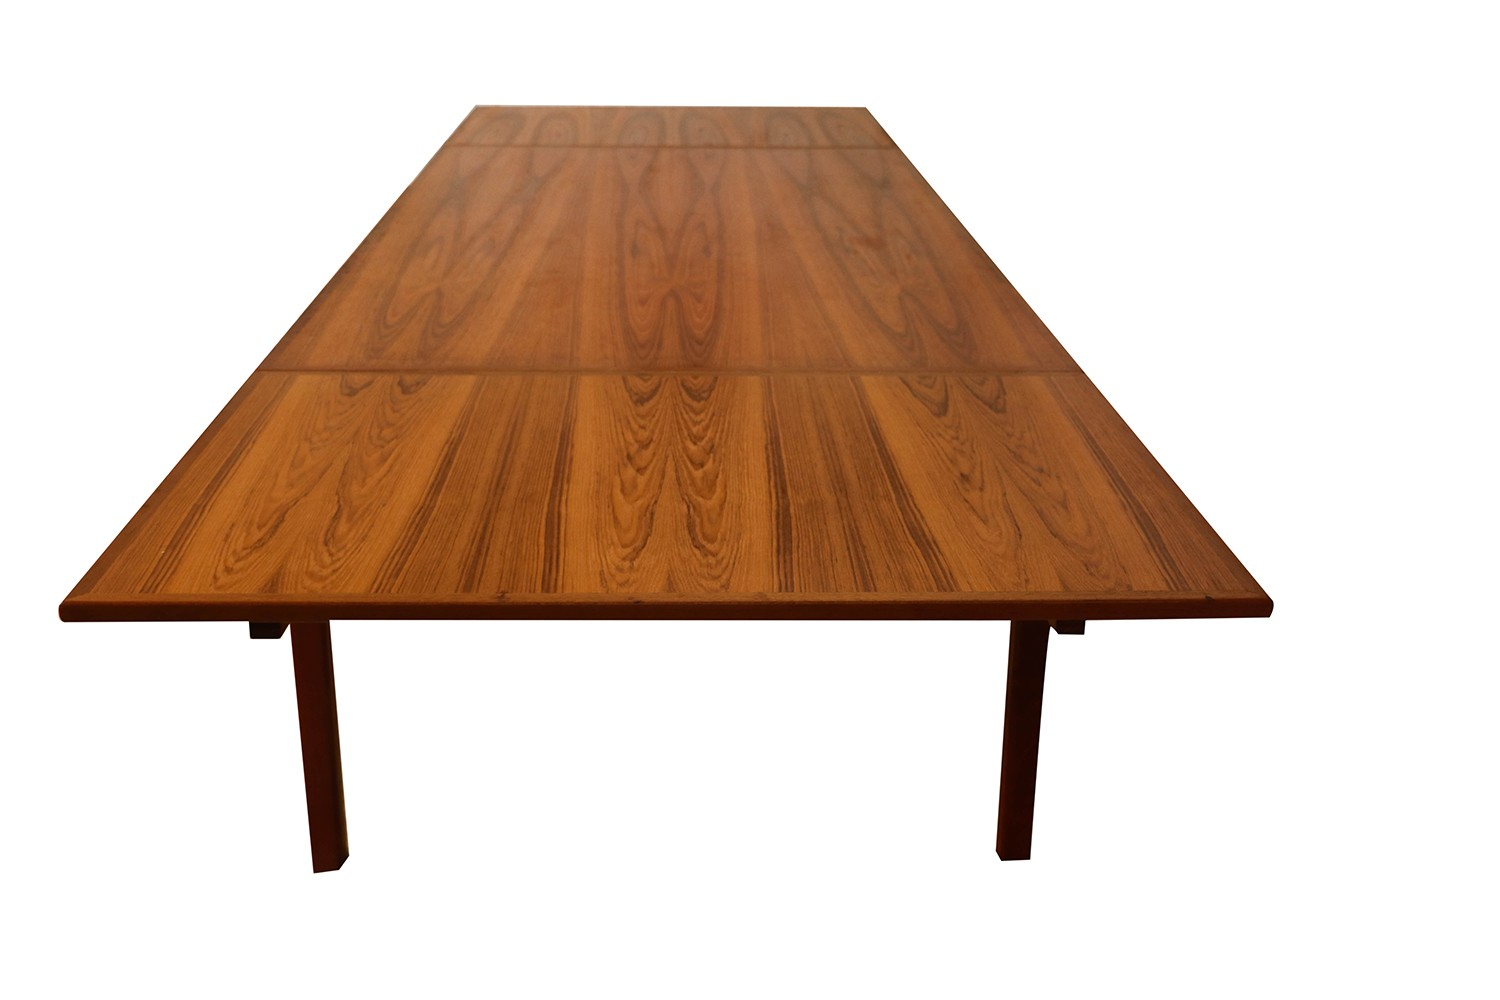 danish teak extra large expanding dining table with 2 leaves. Black Bedroom Furniture Sets. Home Design Ideas